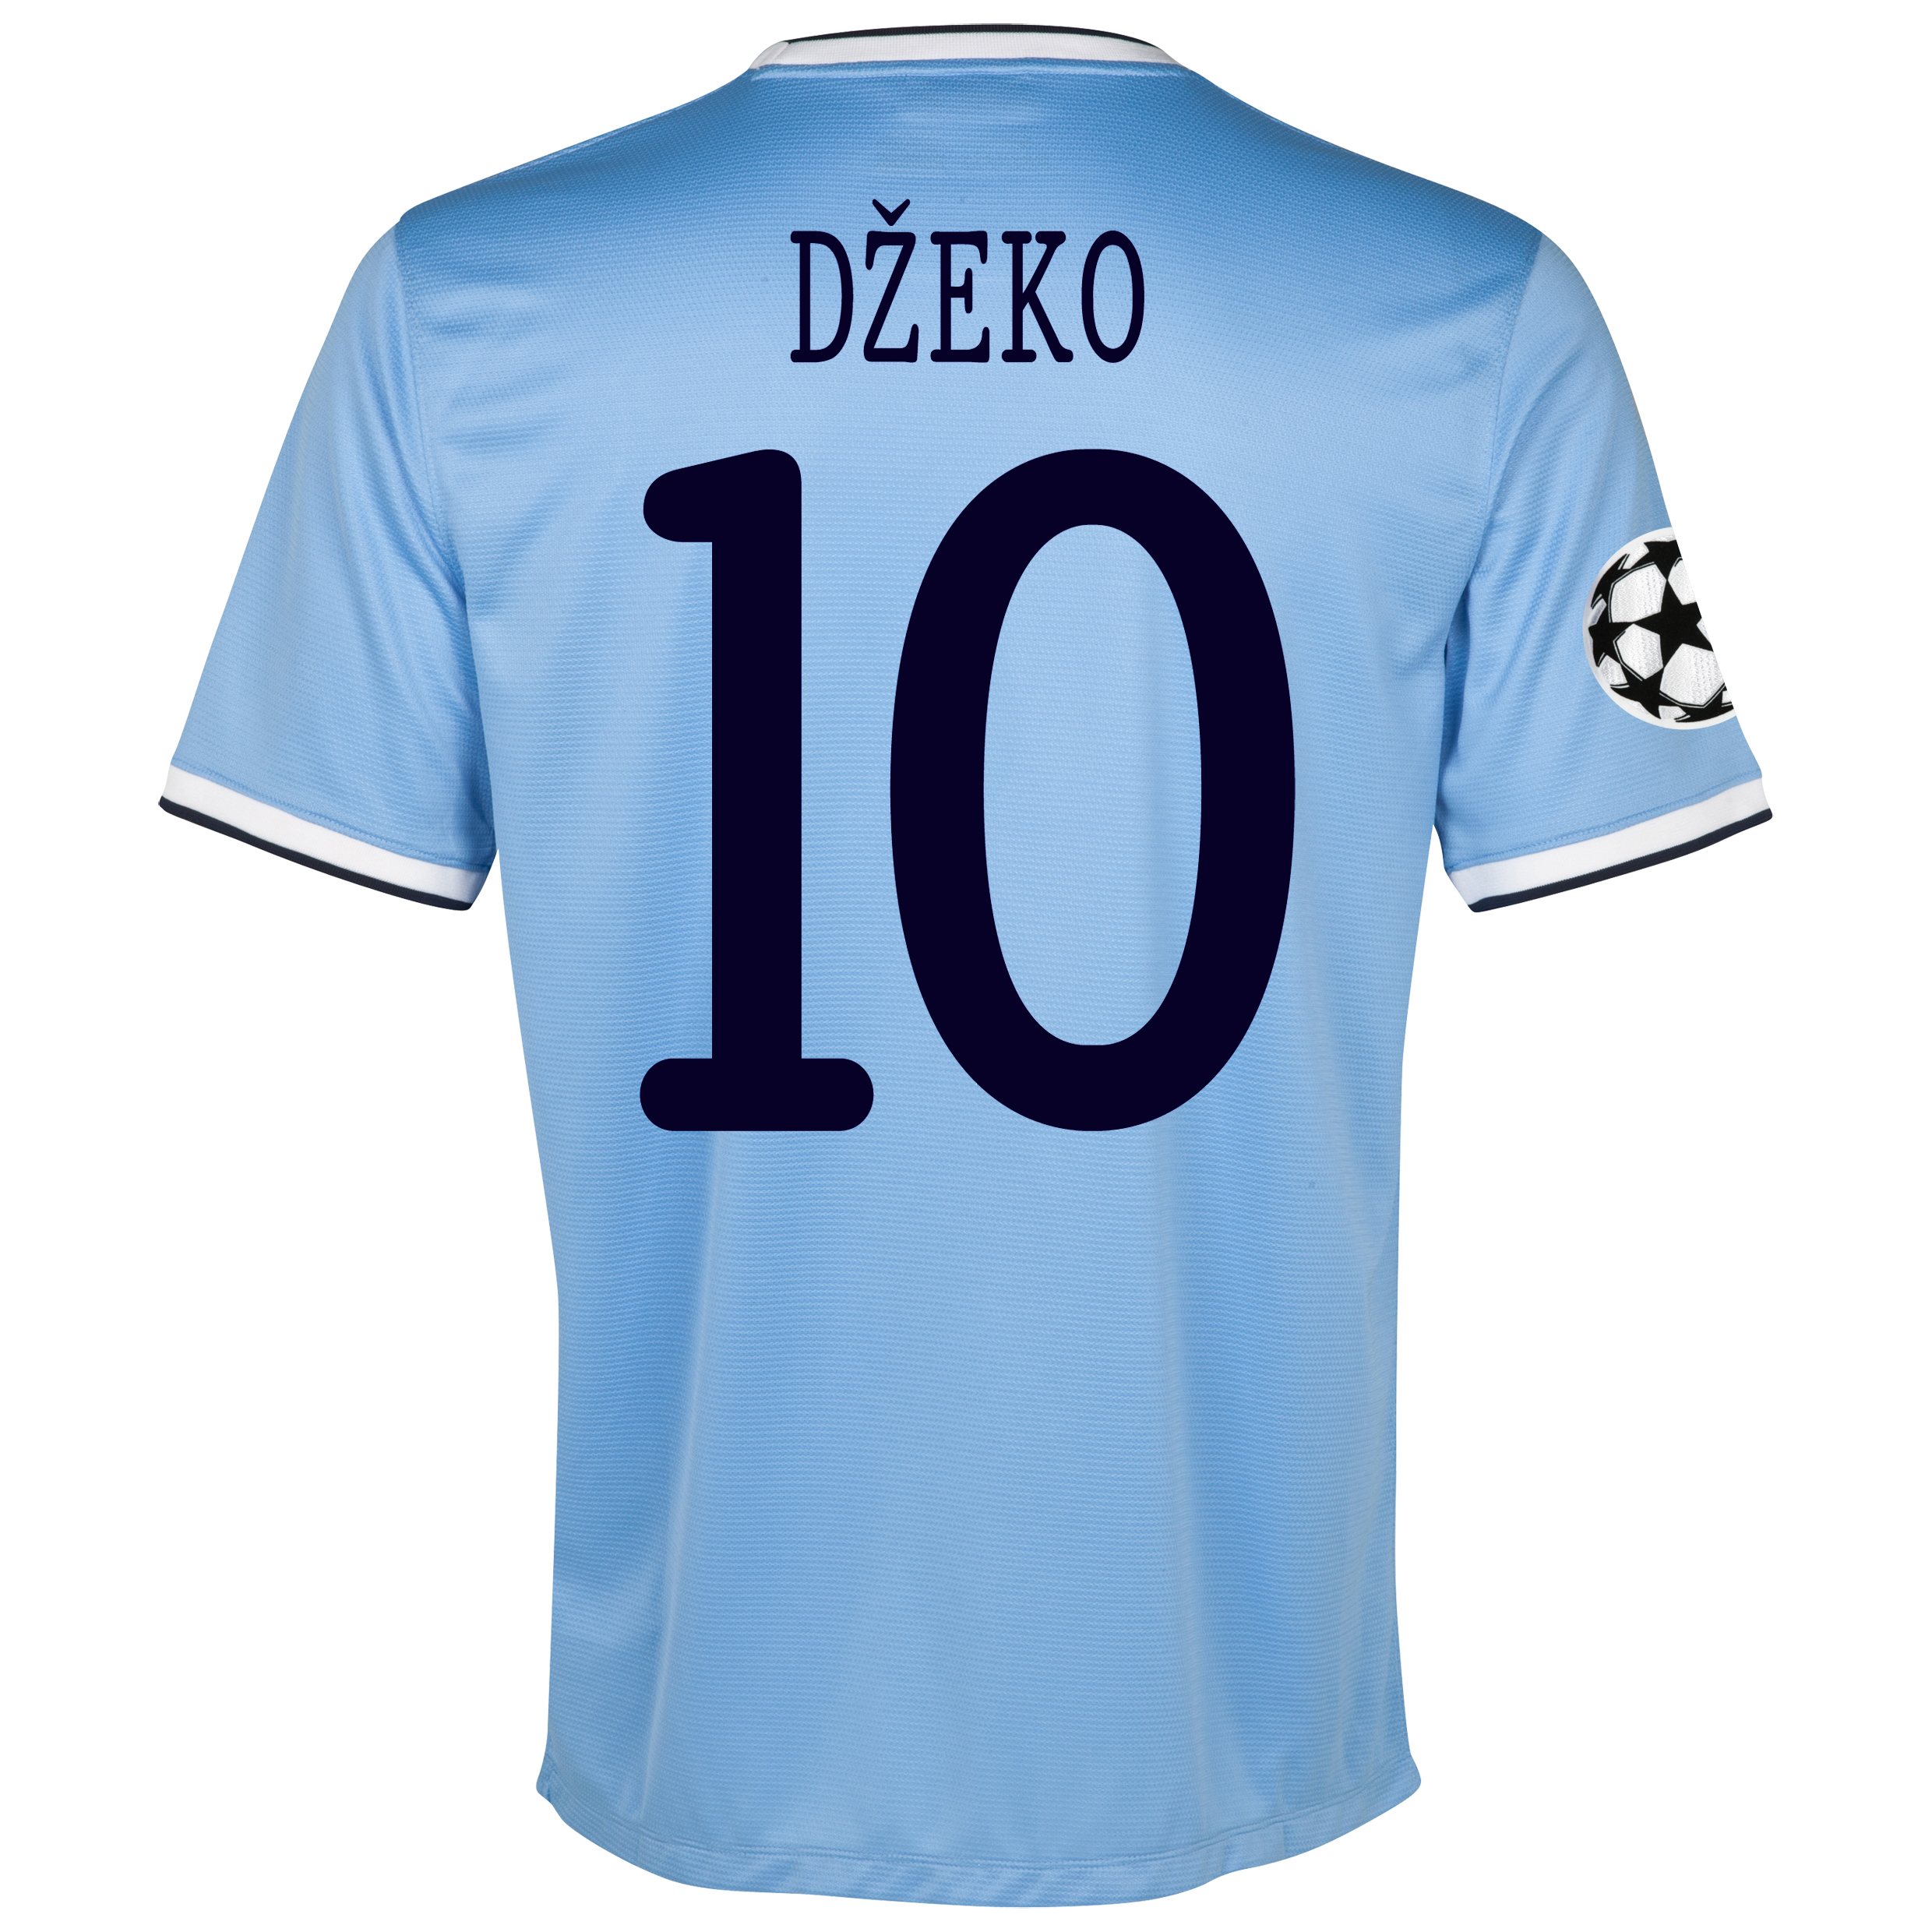 Manchester City UEFA Champions League Home Shirt 2013/14 with Dzeko 10 printing